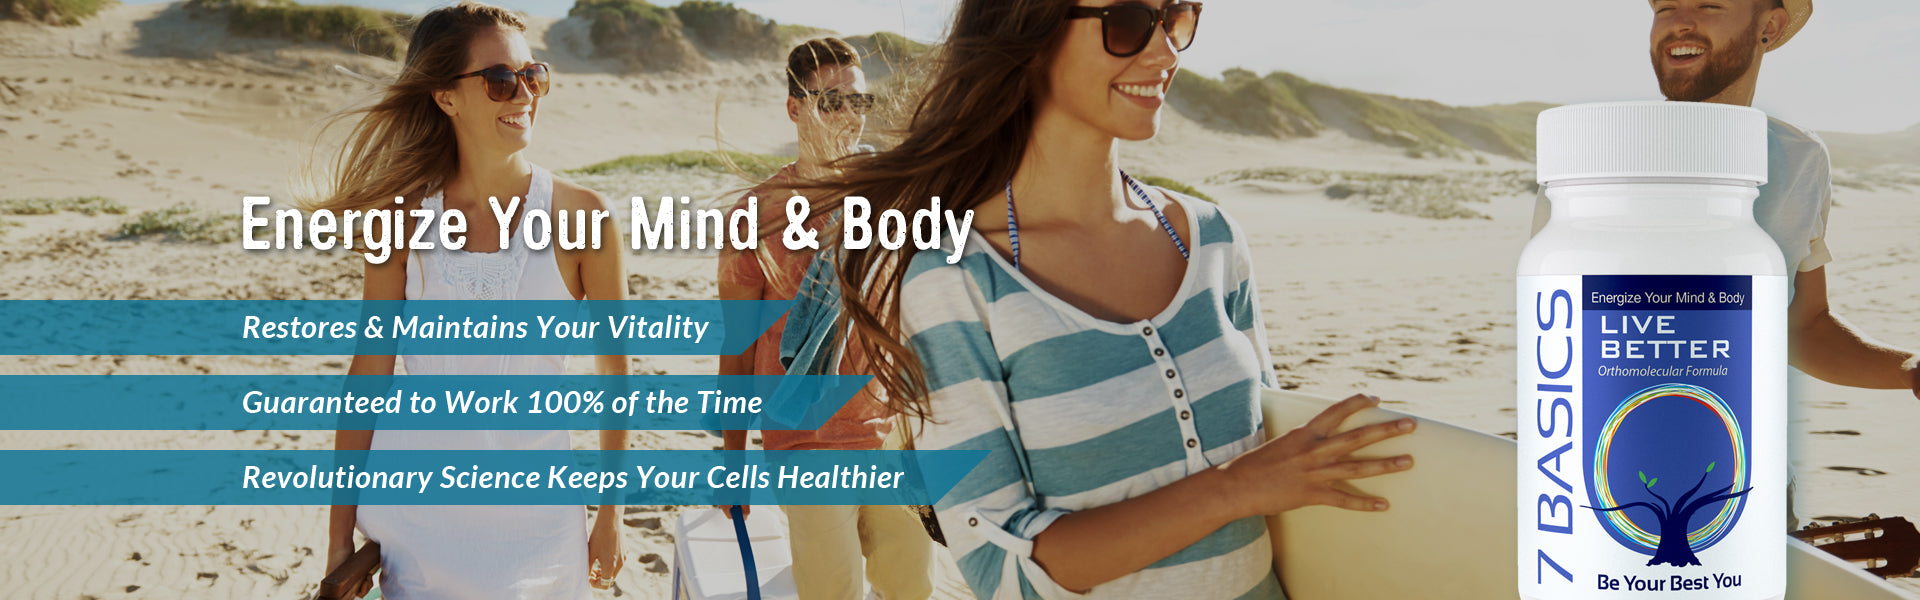 energize your mind and body